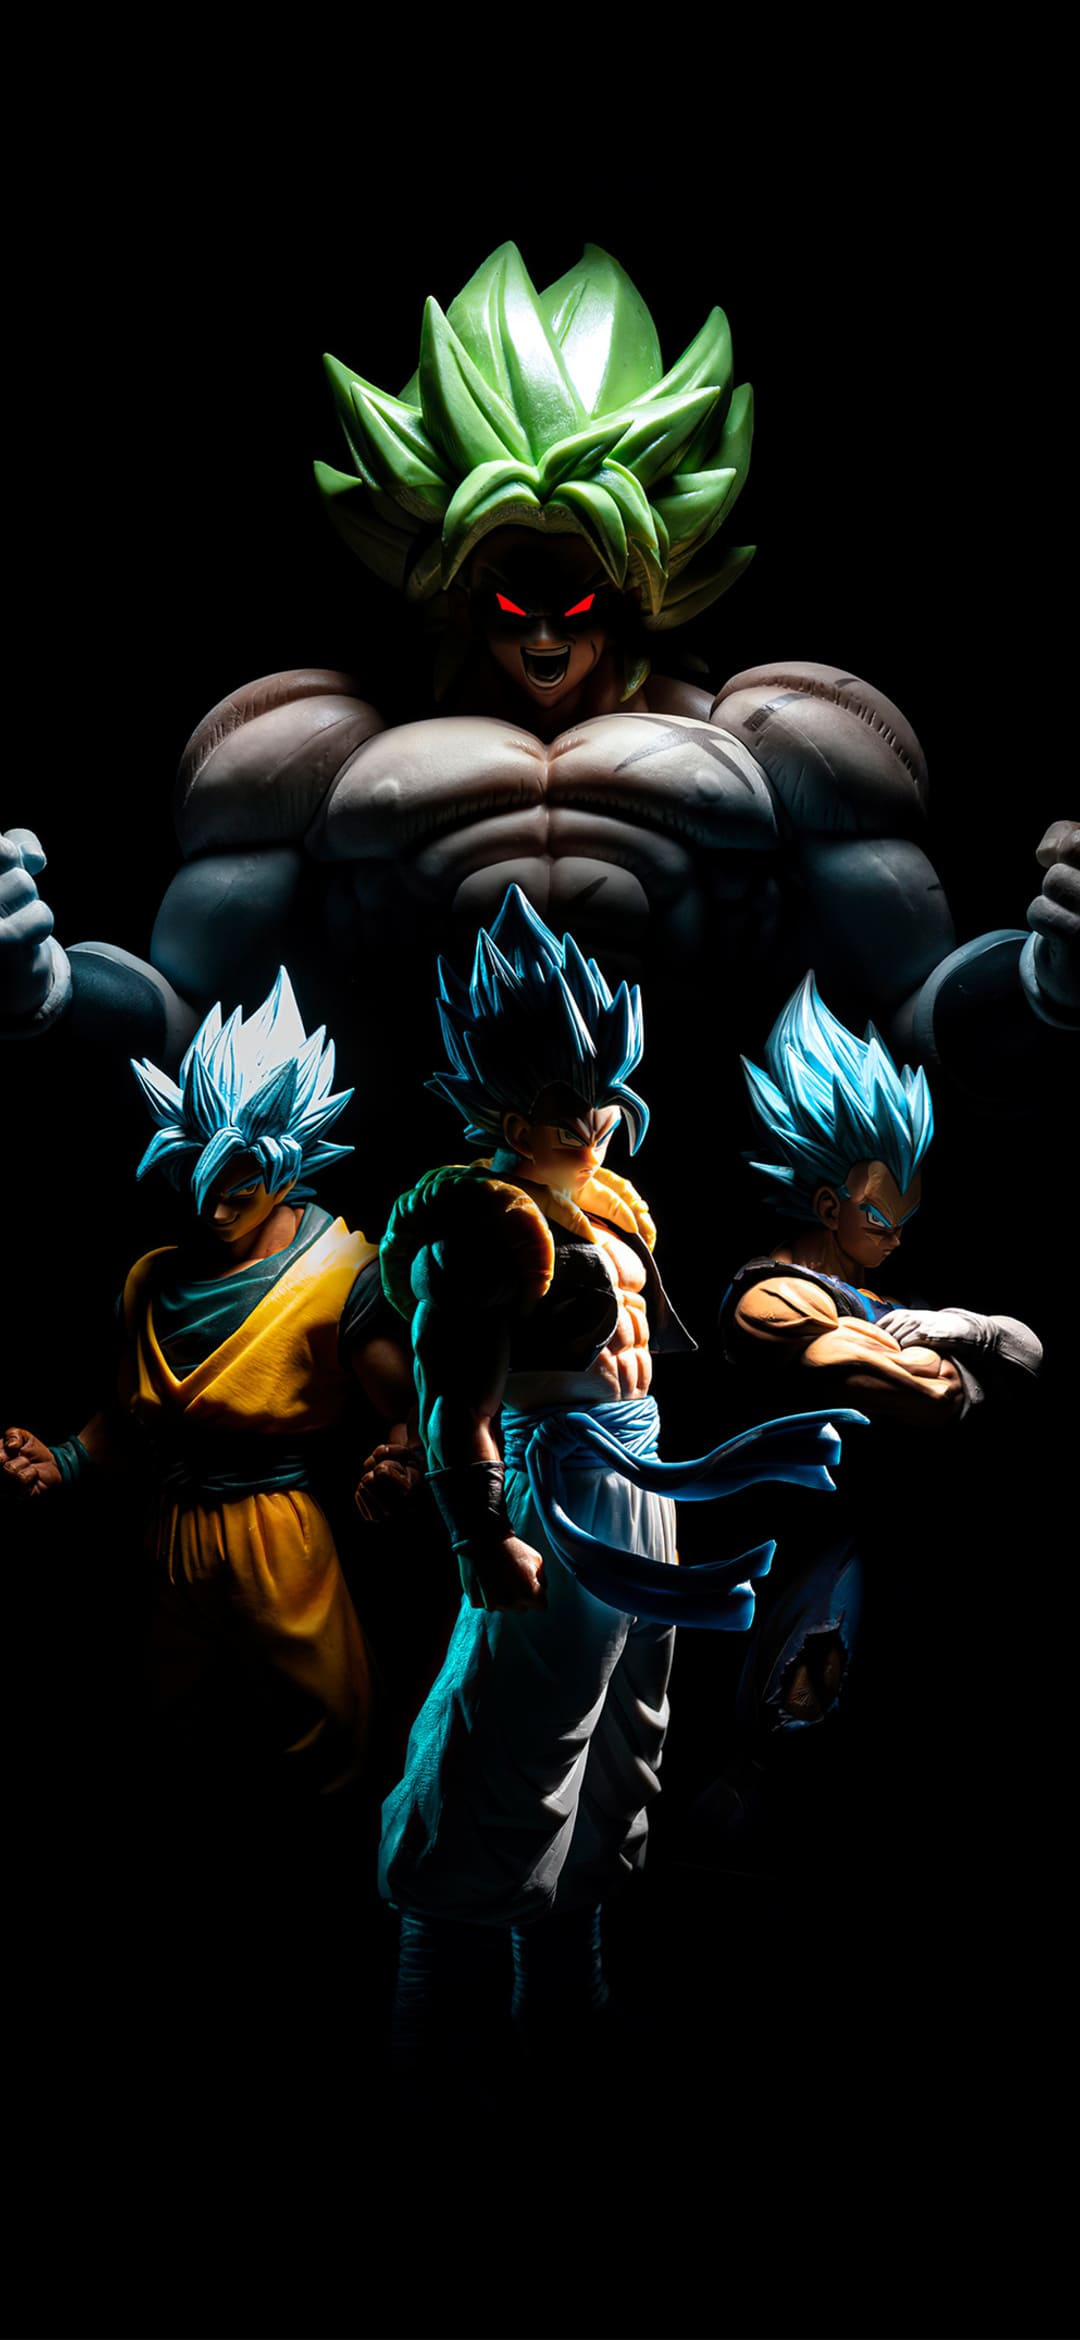 Goku Wallpaper Amoled Goku Dragon Ball Z Wallpaper 4k 1080x2340 Download Hd Wallpaper Wallpapertip